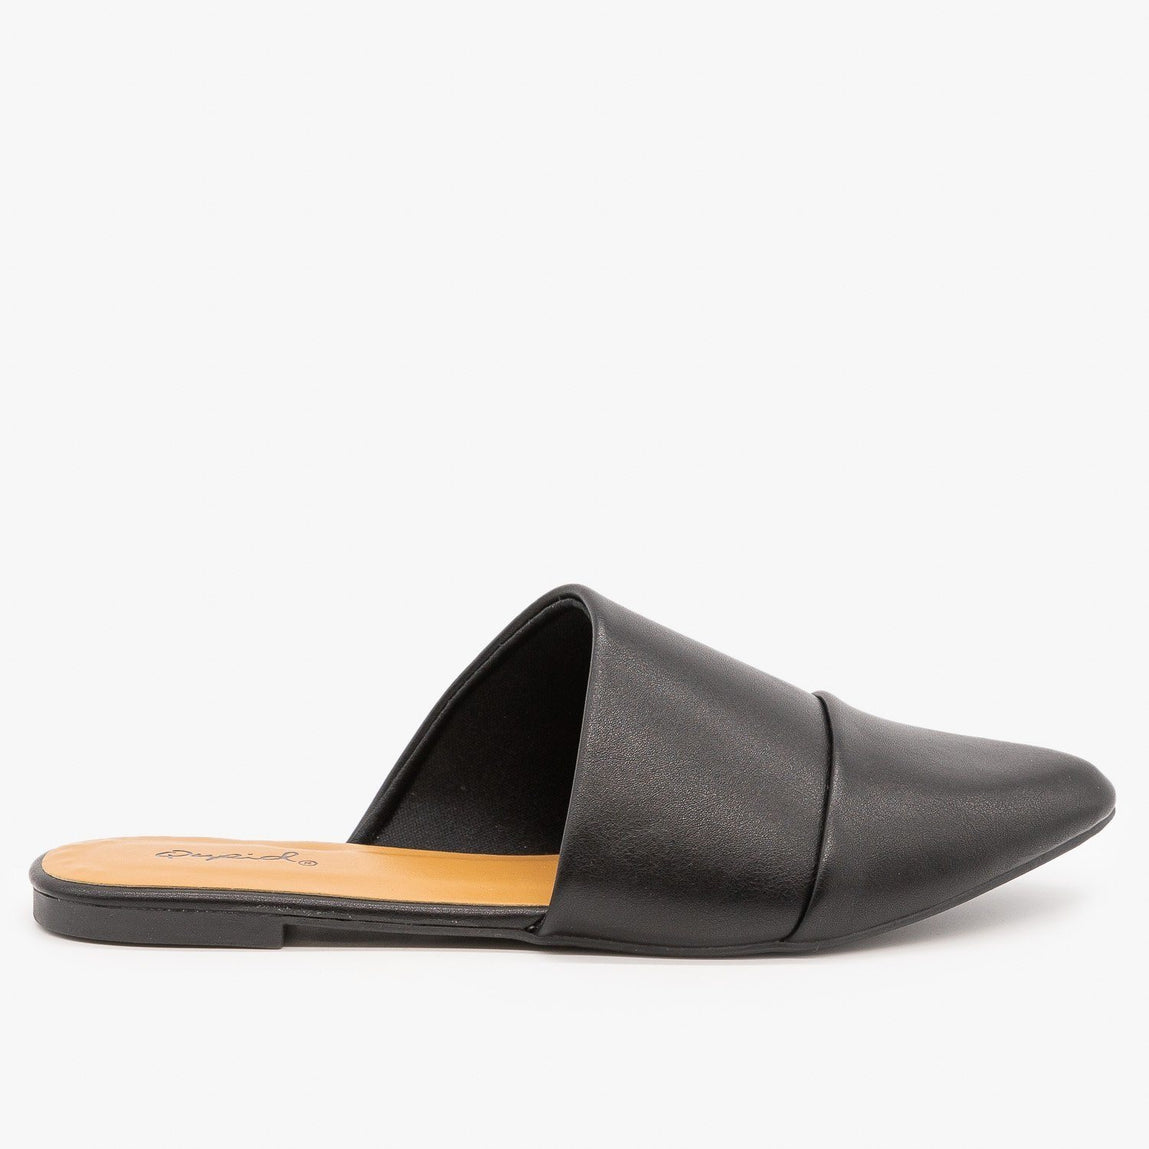 Womens Chic Wrapped Mules - Qupid Shoes - Black / 5